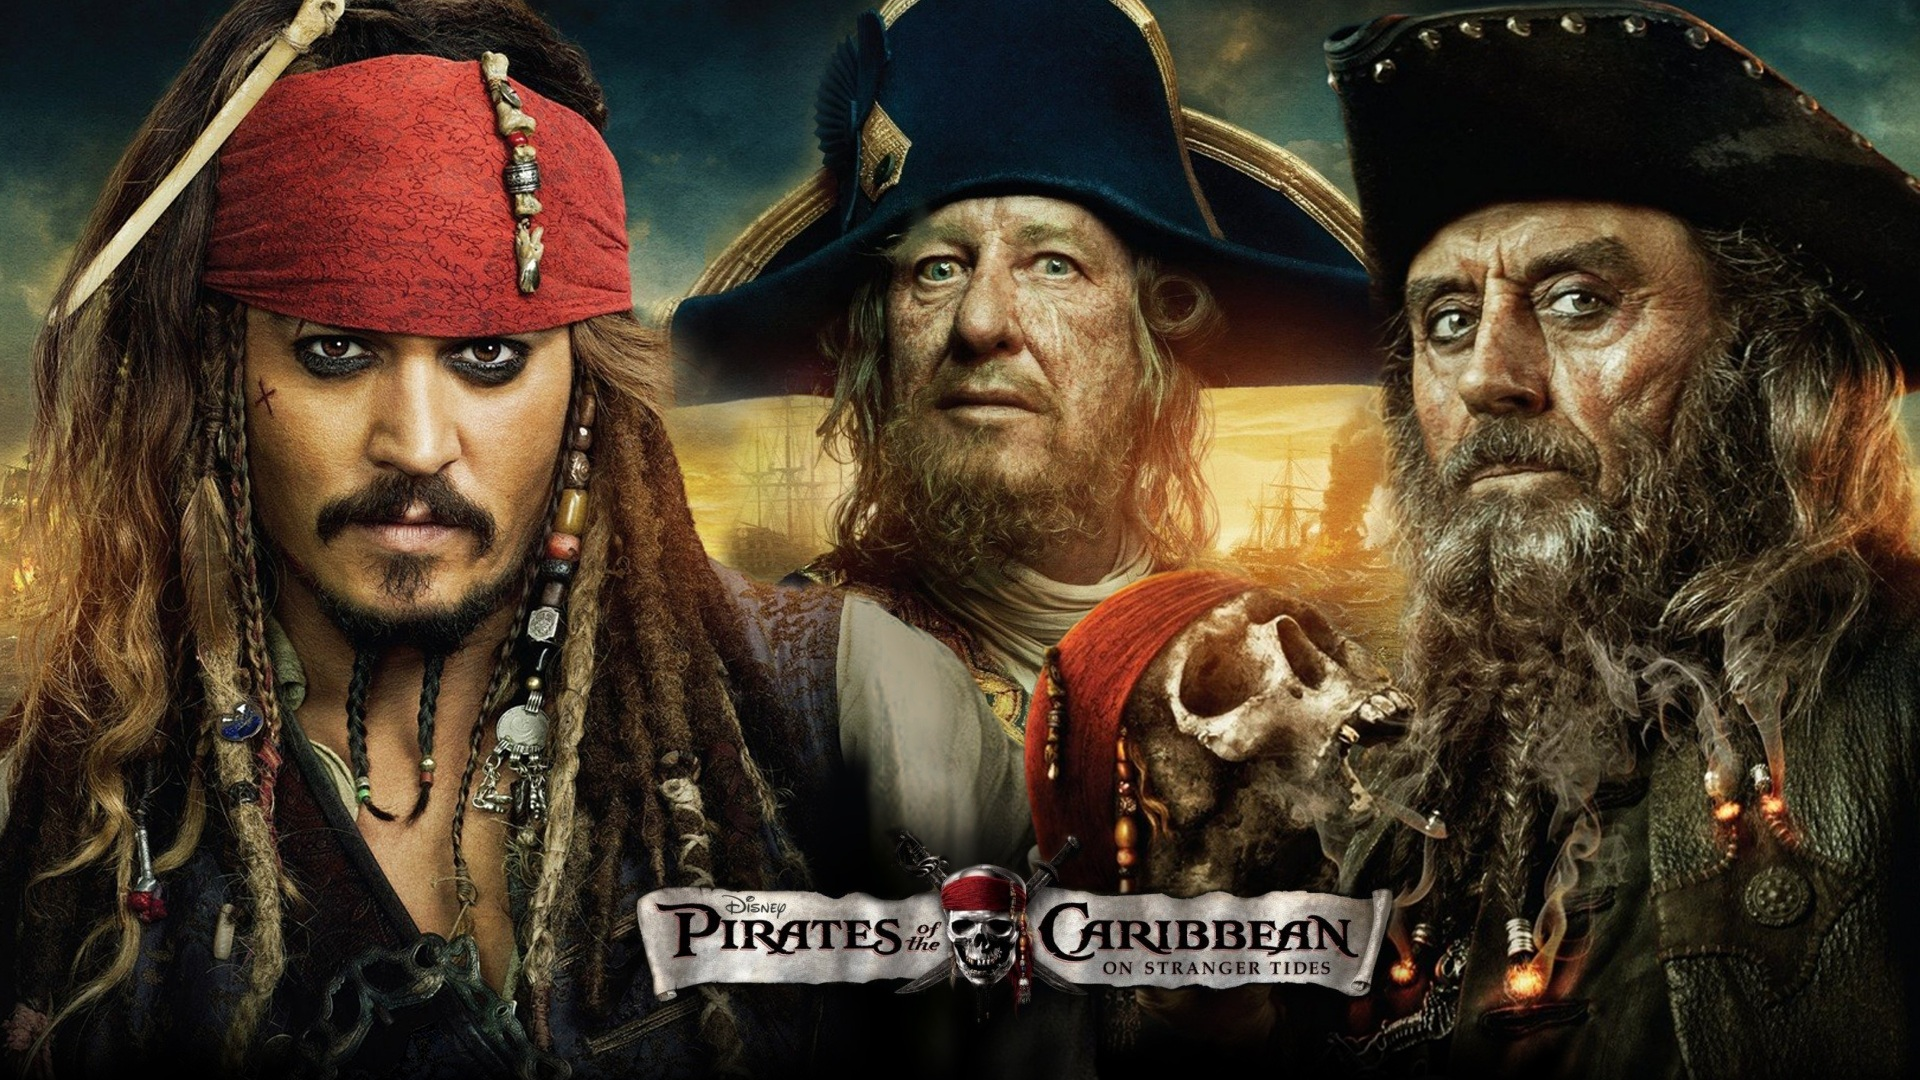 Pirates-of-the-Caribbean-4-Three-pirates_1920x1080